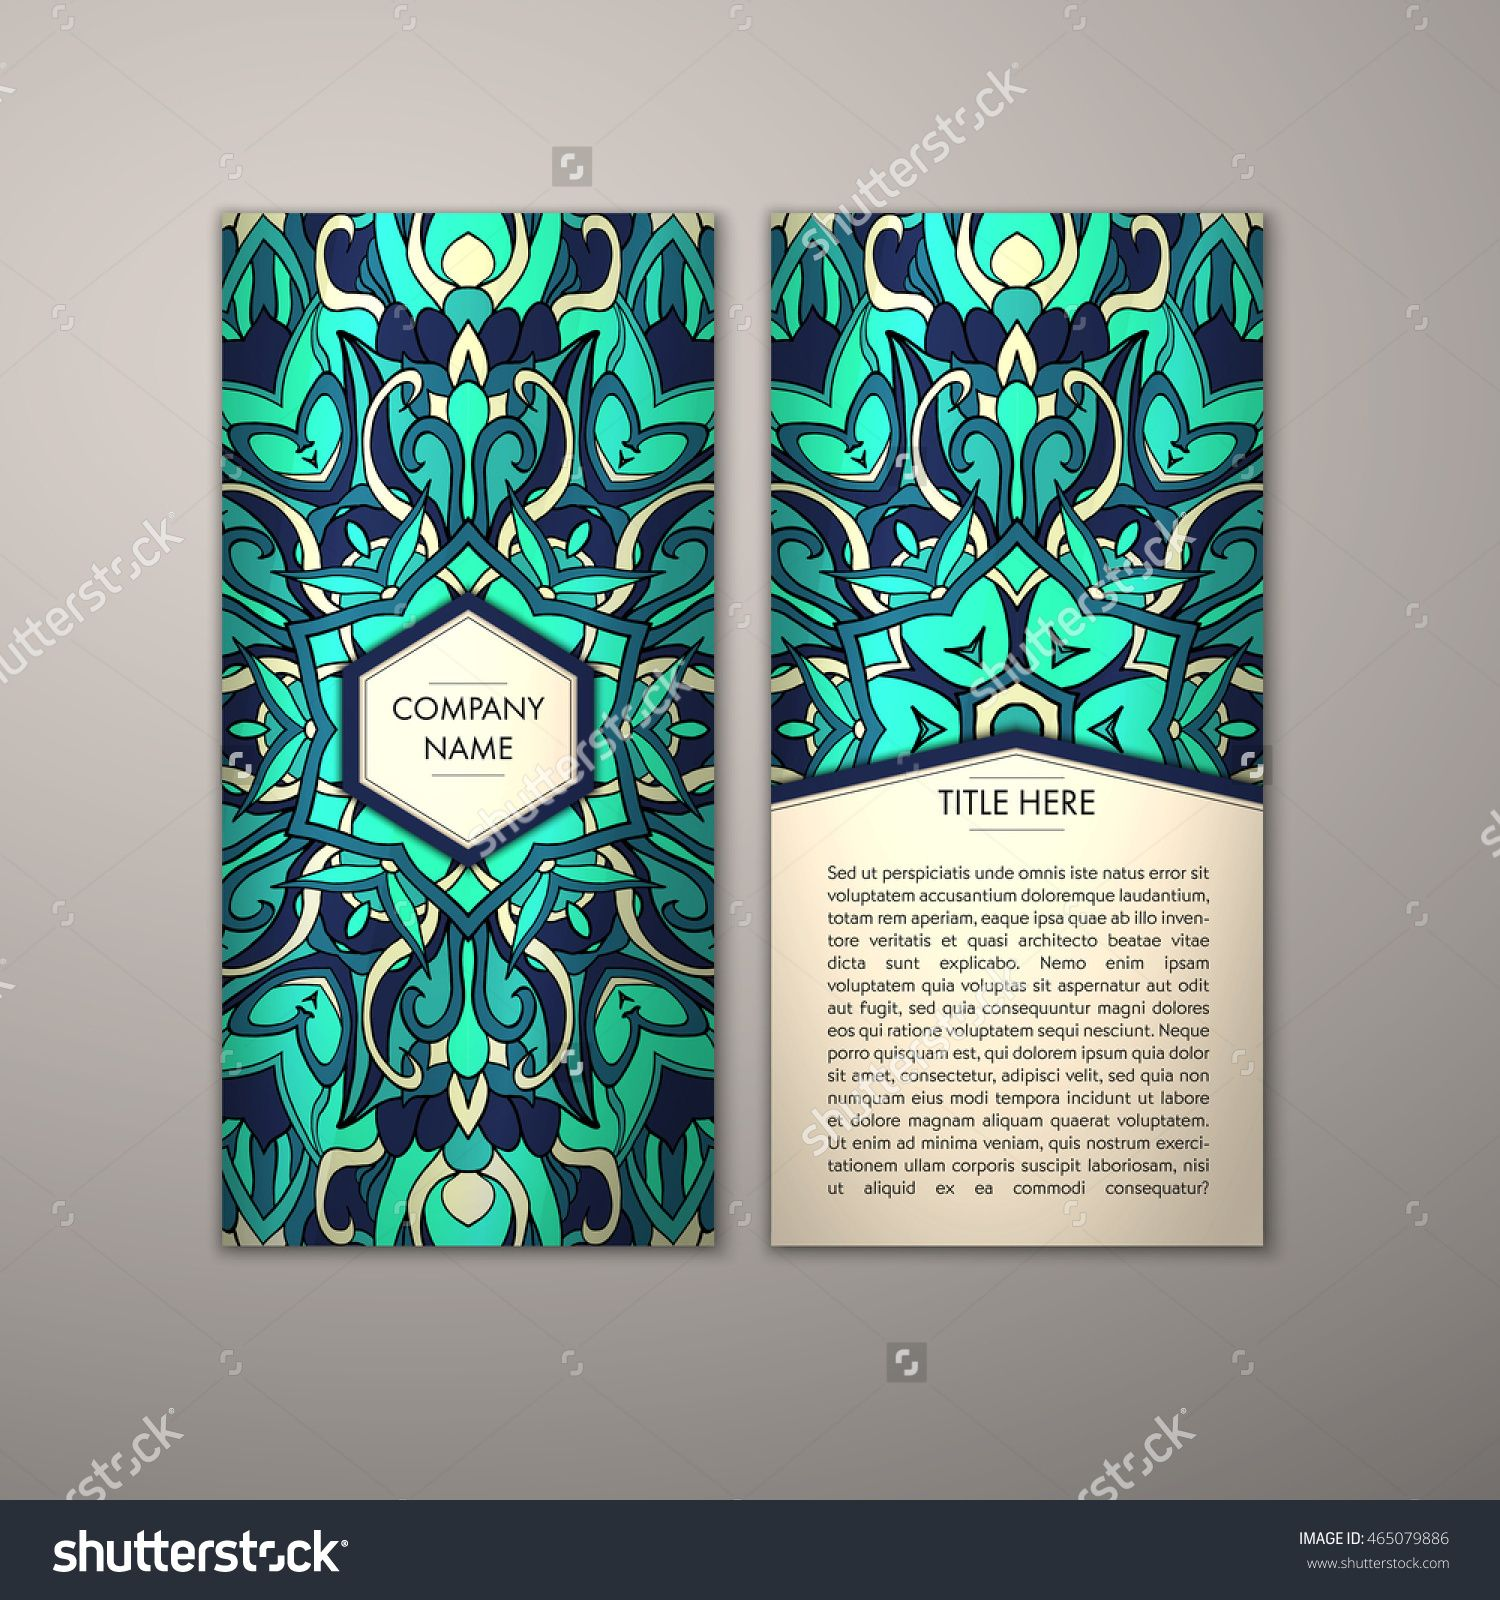 Flyer Template With Abstract Ornament Pattern. Vector Greeting Card Design. Front Page And Back Page. - 465079886 : Shutterstock